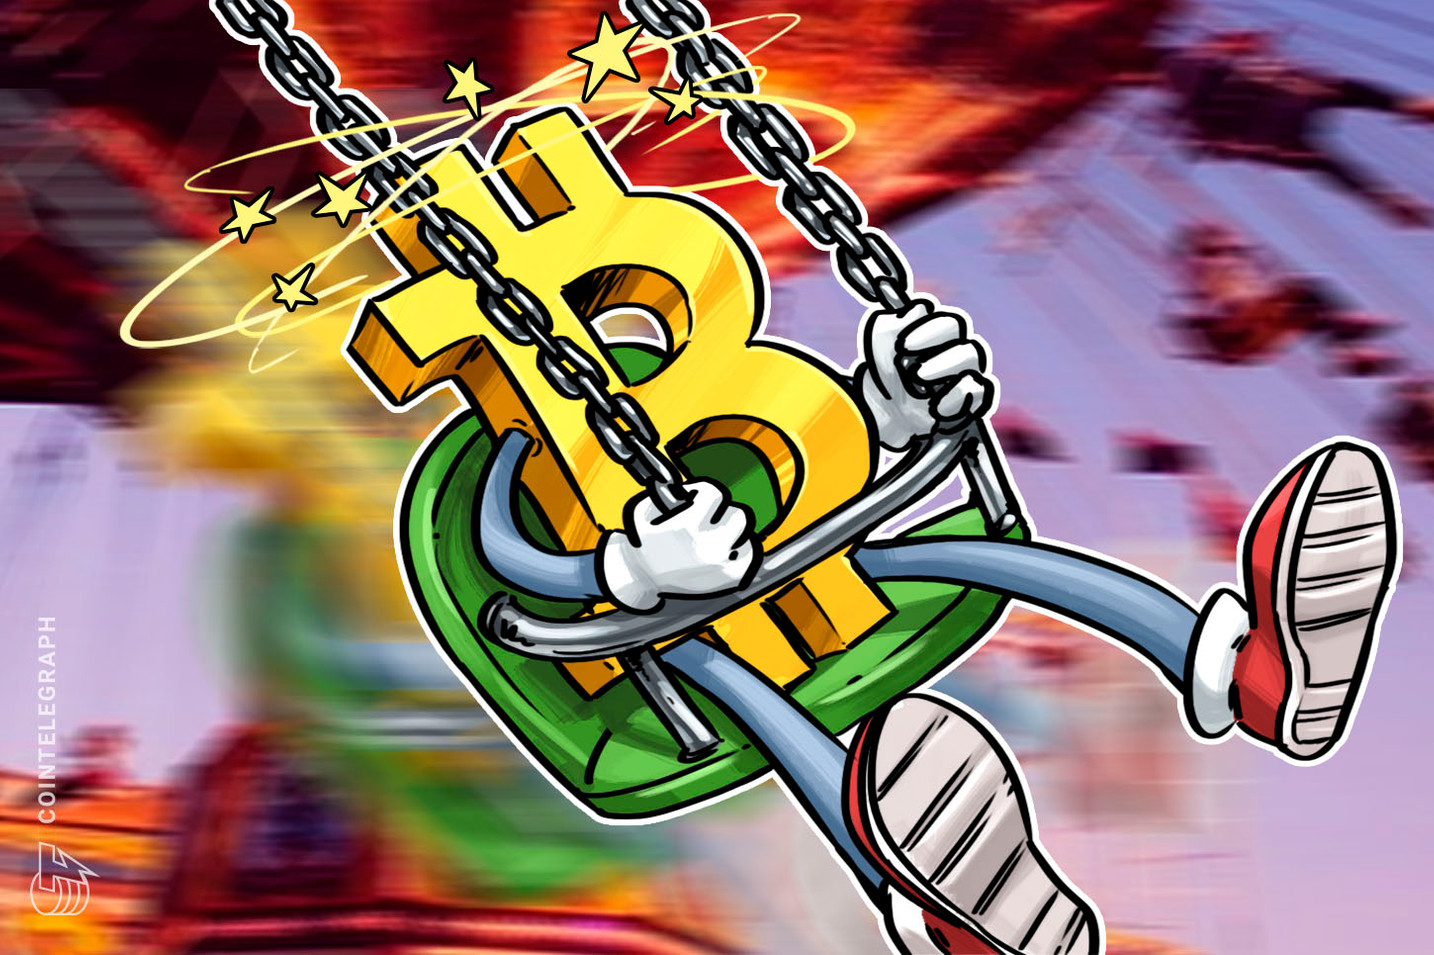 Bitcoin Price Volatility Expected as 10% Mining Difficulty Adjustment Looms